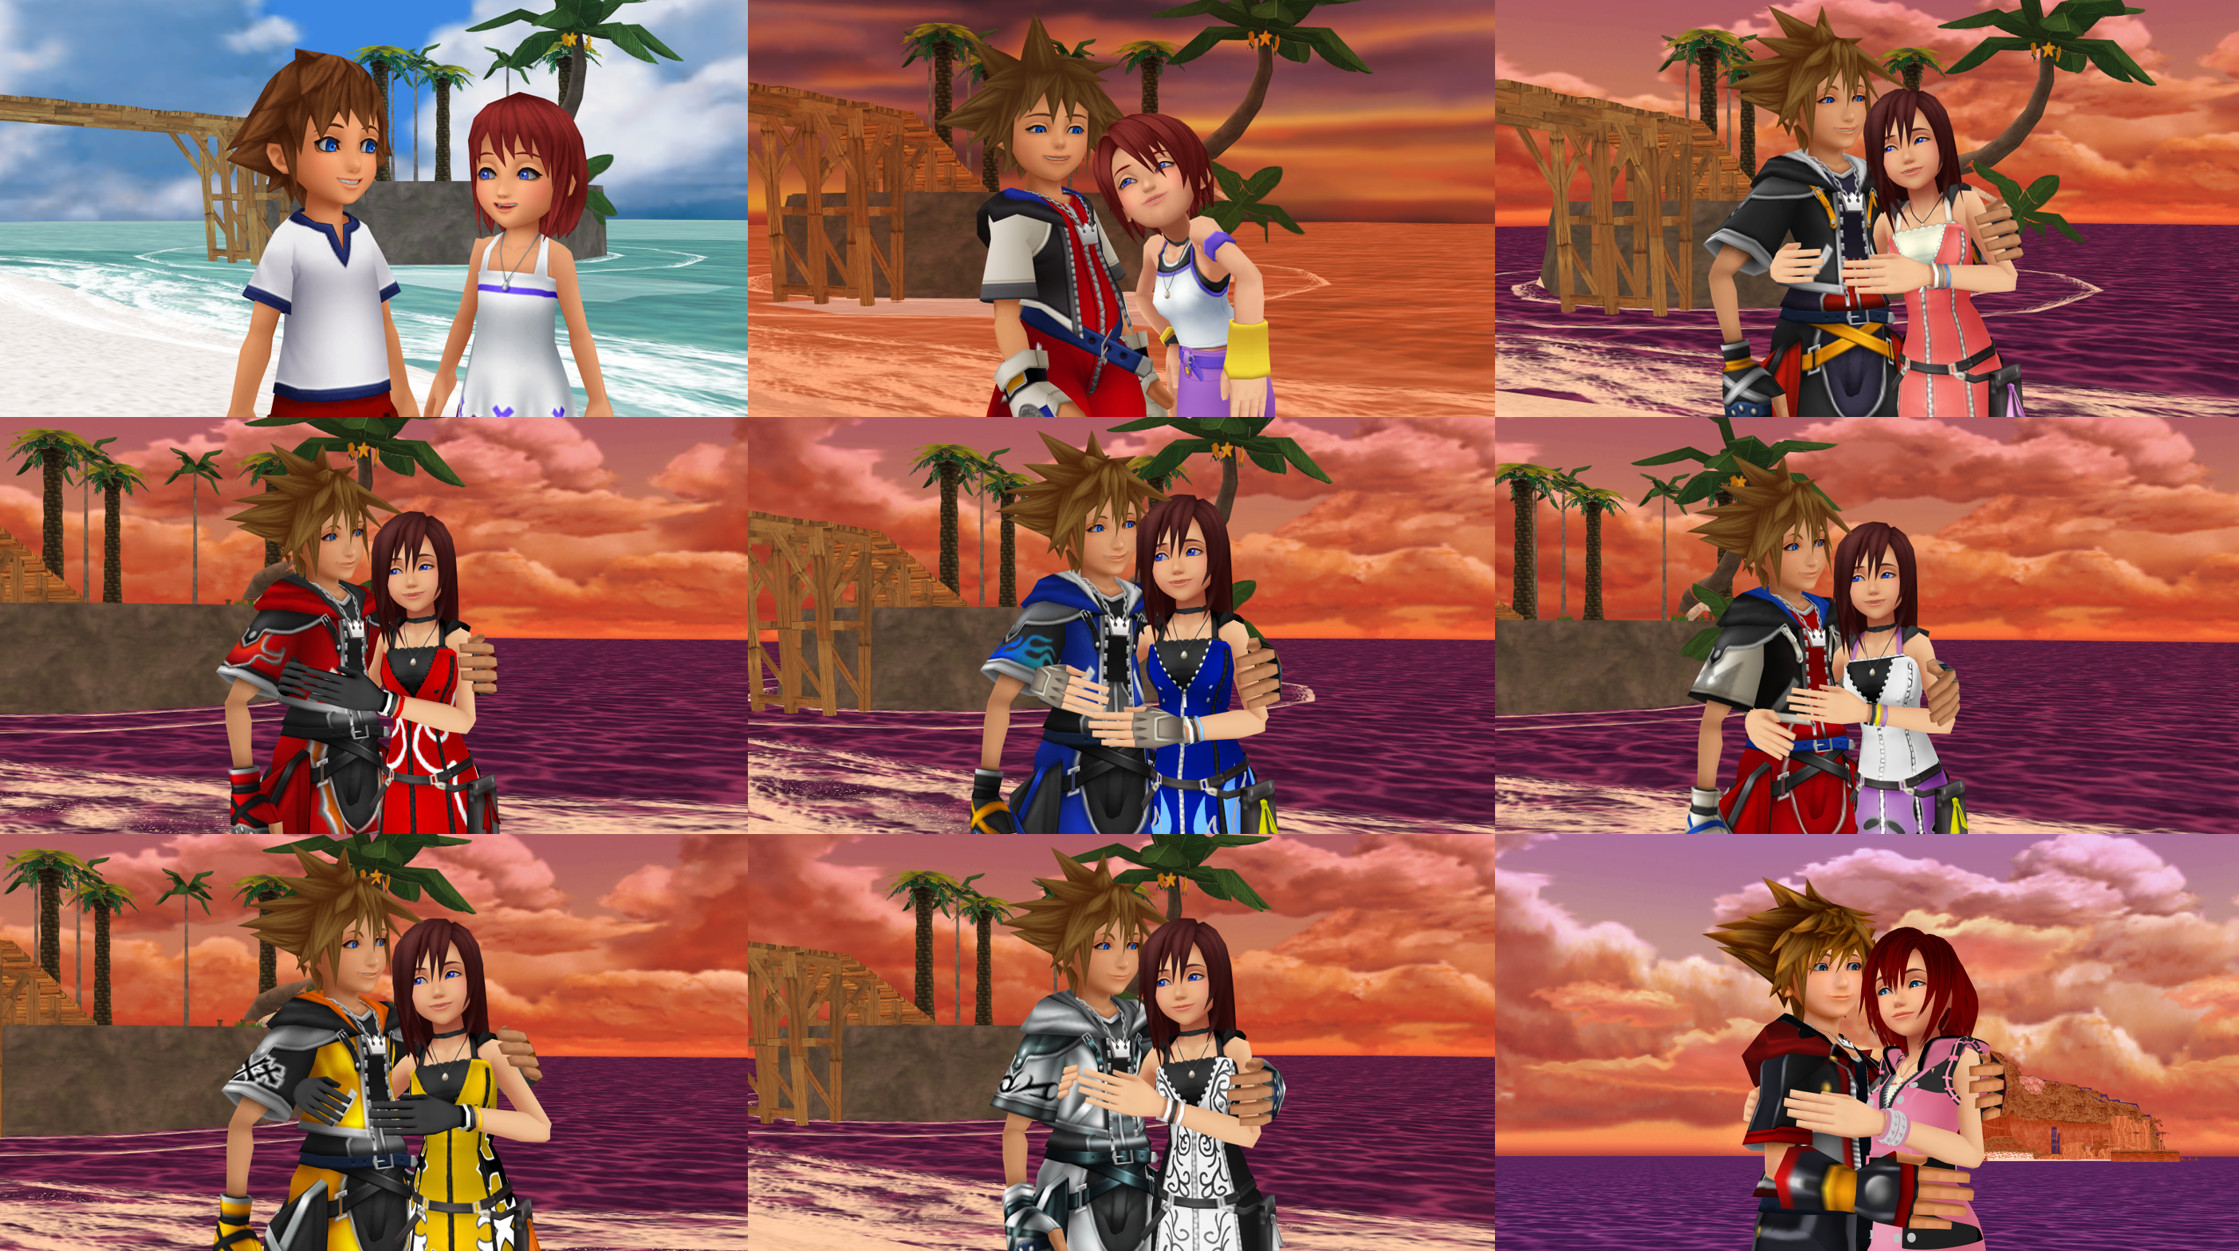 Res: 2239x1251, Kairi & Sora images SoraxKairi Sky and Sea Form KHBSS KHI KHII KHIII HD  wallpaper and background photos